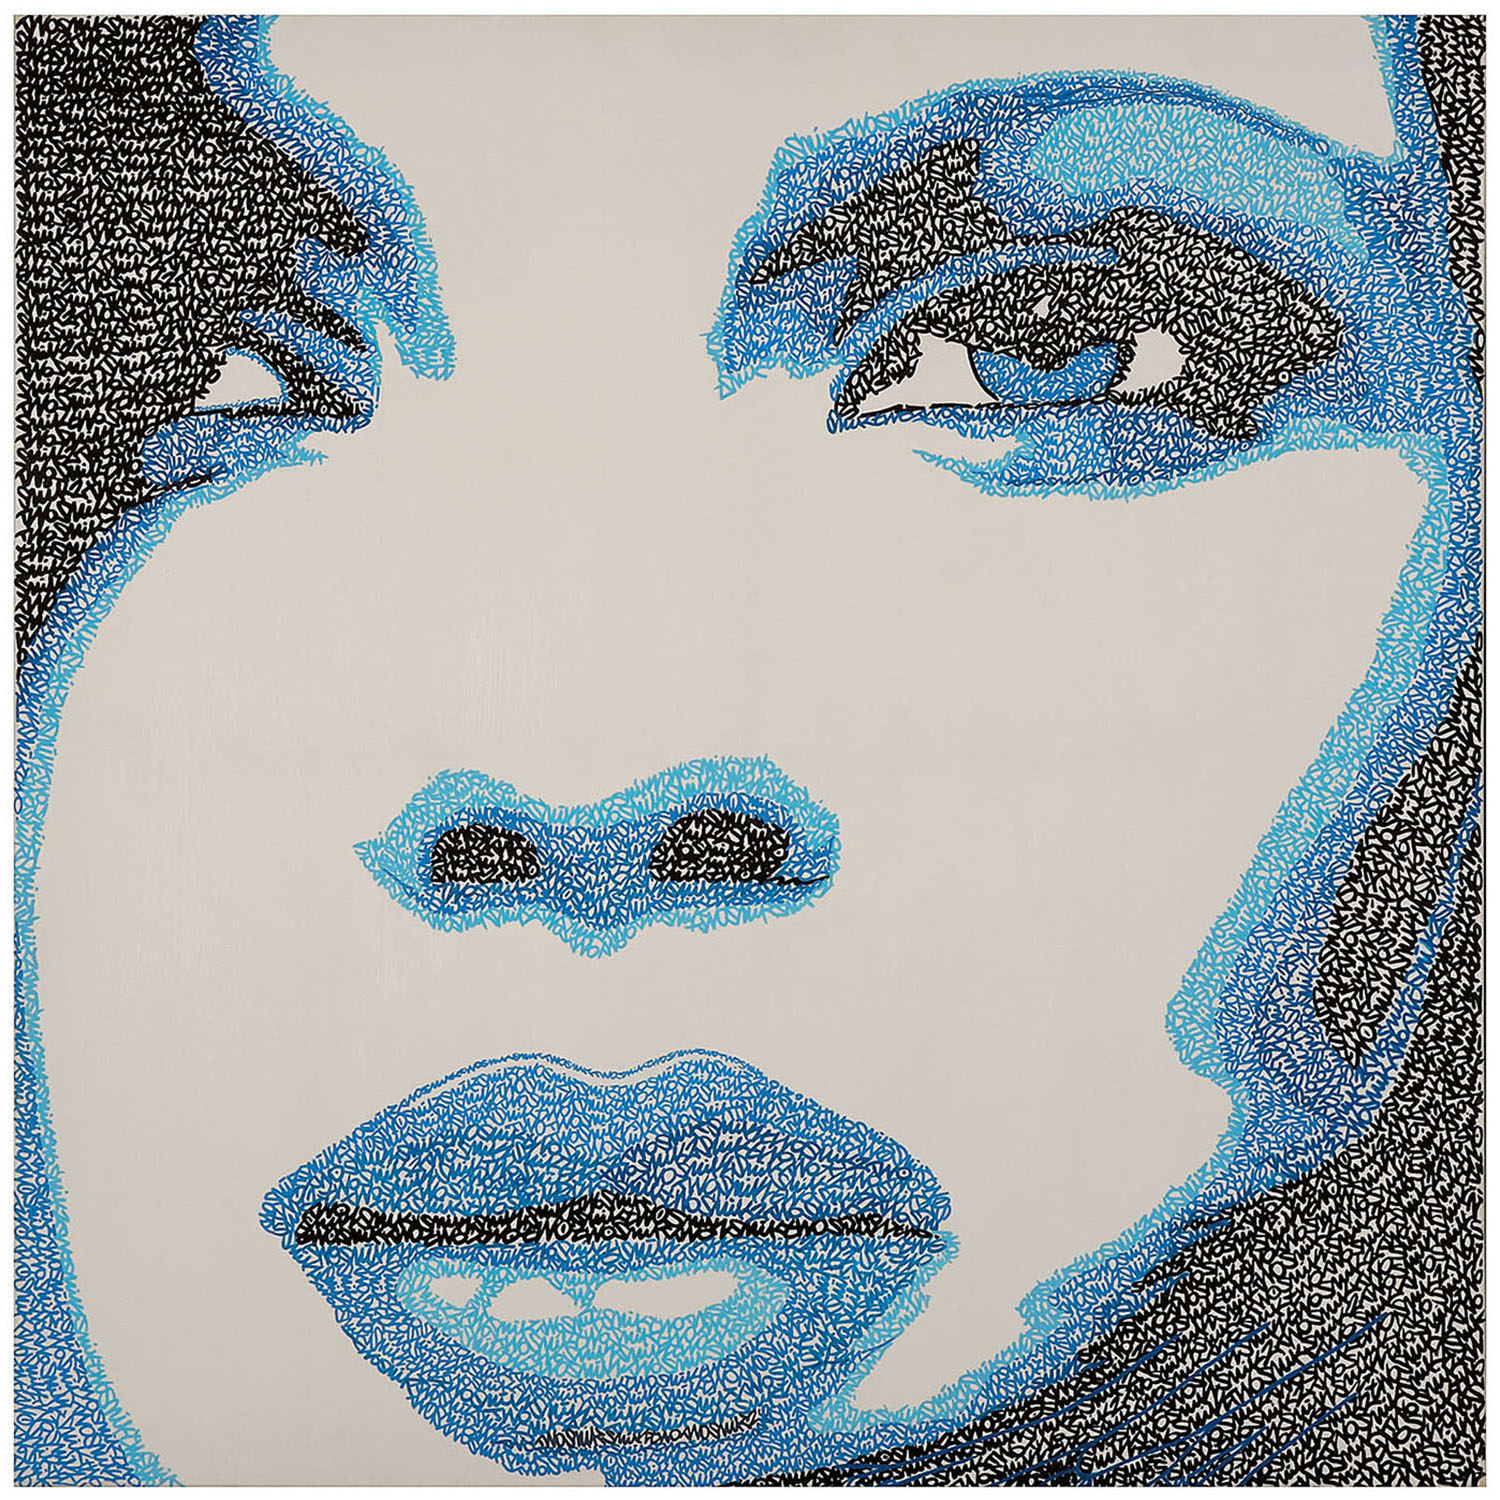 SnikTwo-Blue Girl-2012